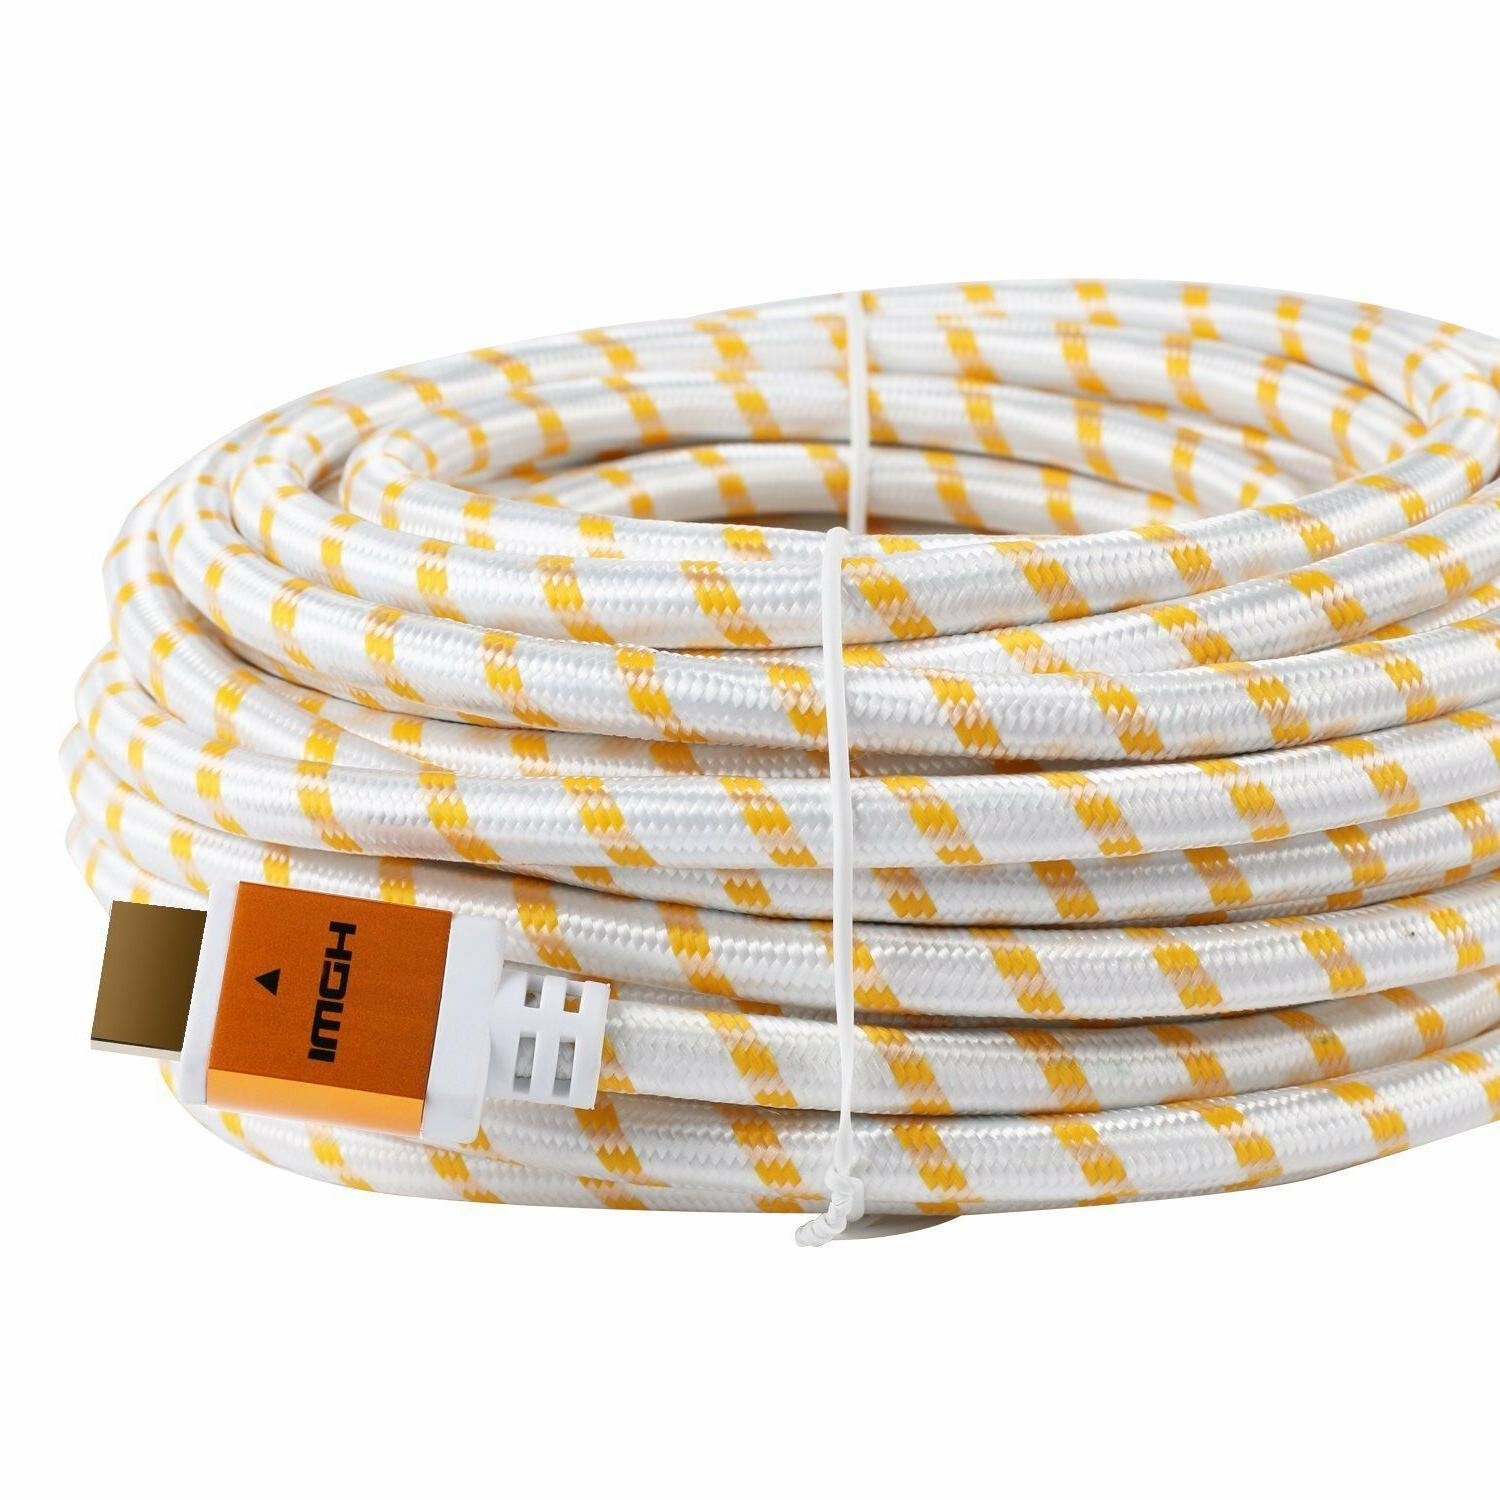 25FT 25feet HDMI Cable 1.4 For 3D DVD PS4 HDTV Xbox LCD LED